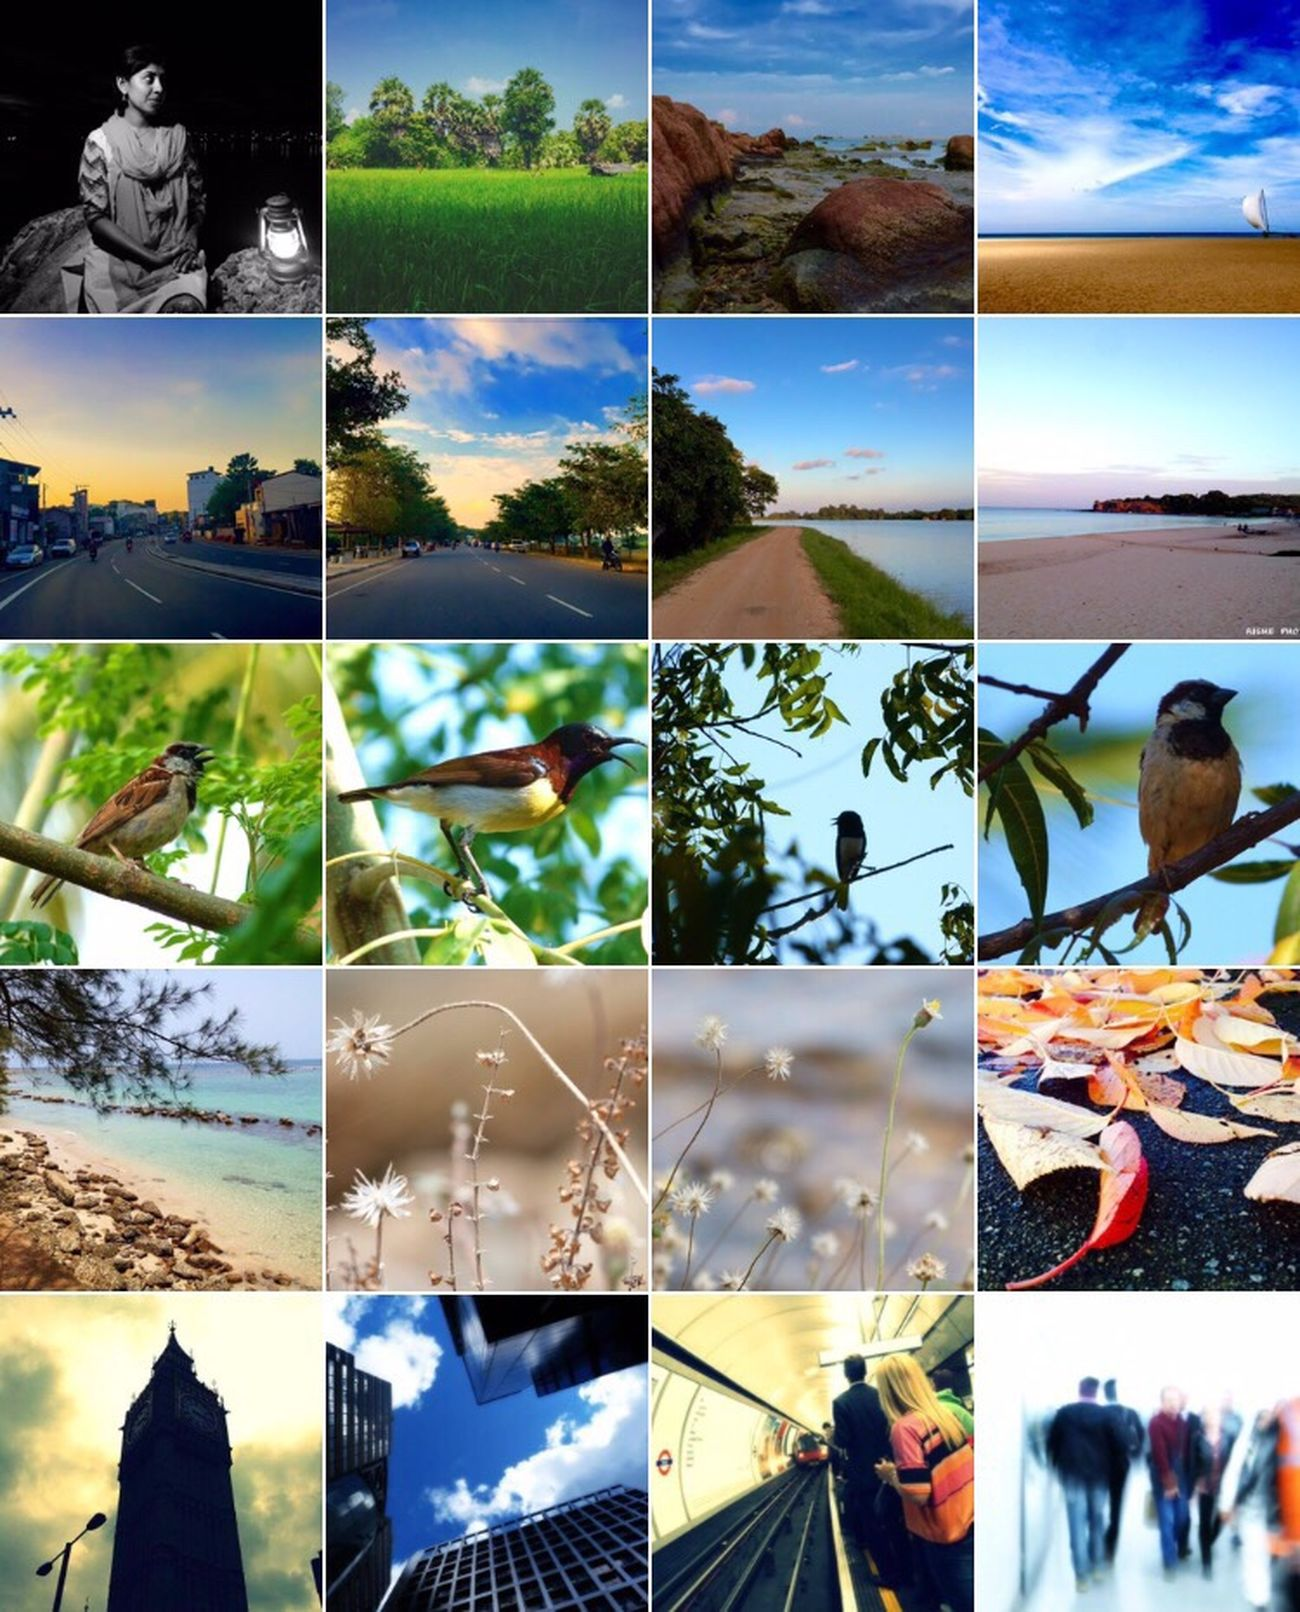 Collage Digital Composite Composite Image Montage Multiple Image Sky Nature No People Close-up Outdoors Day Collections